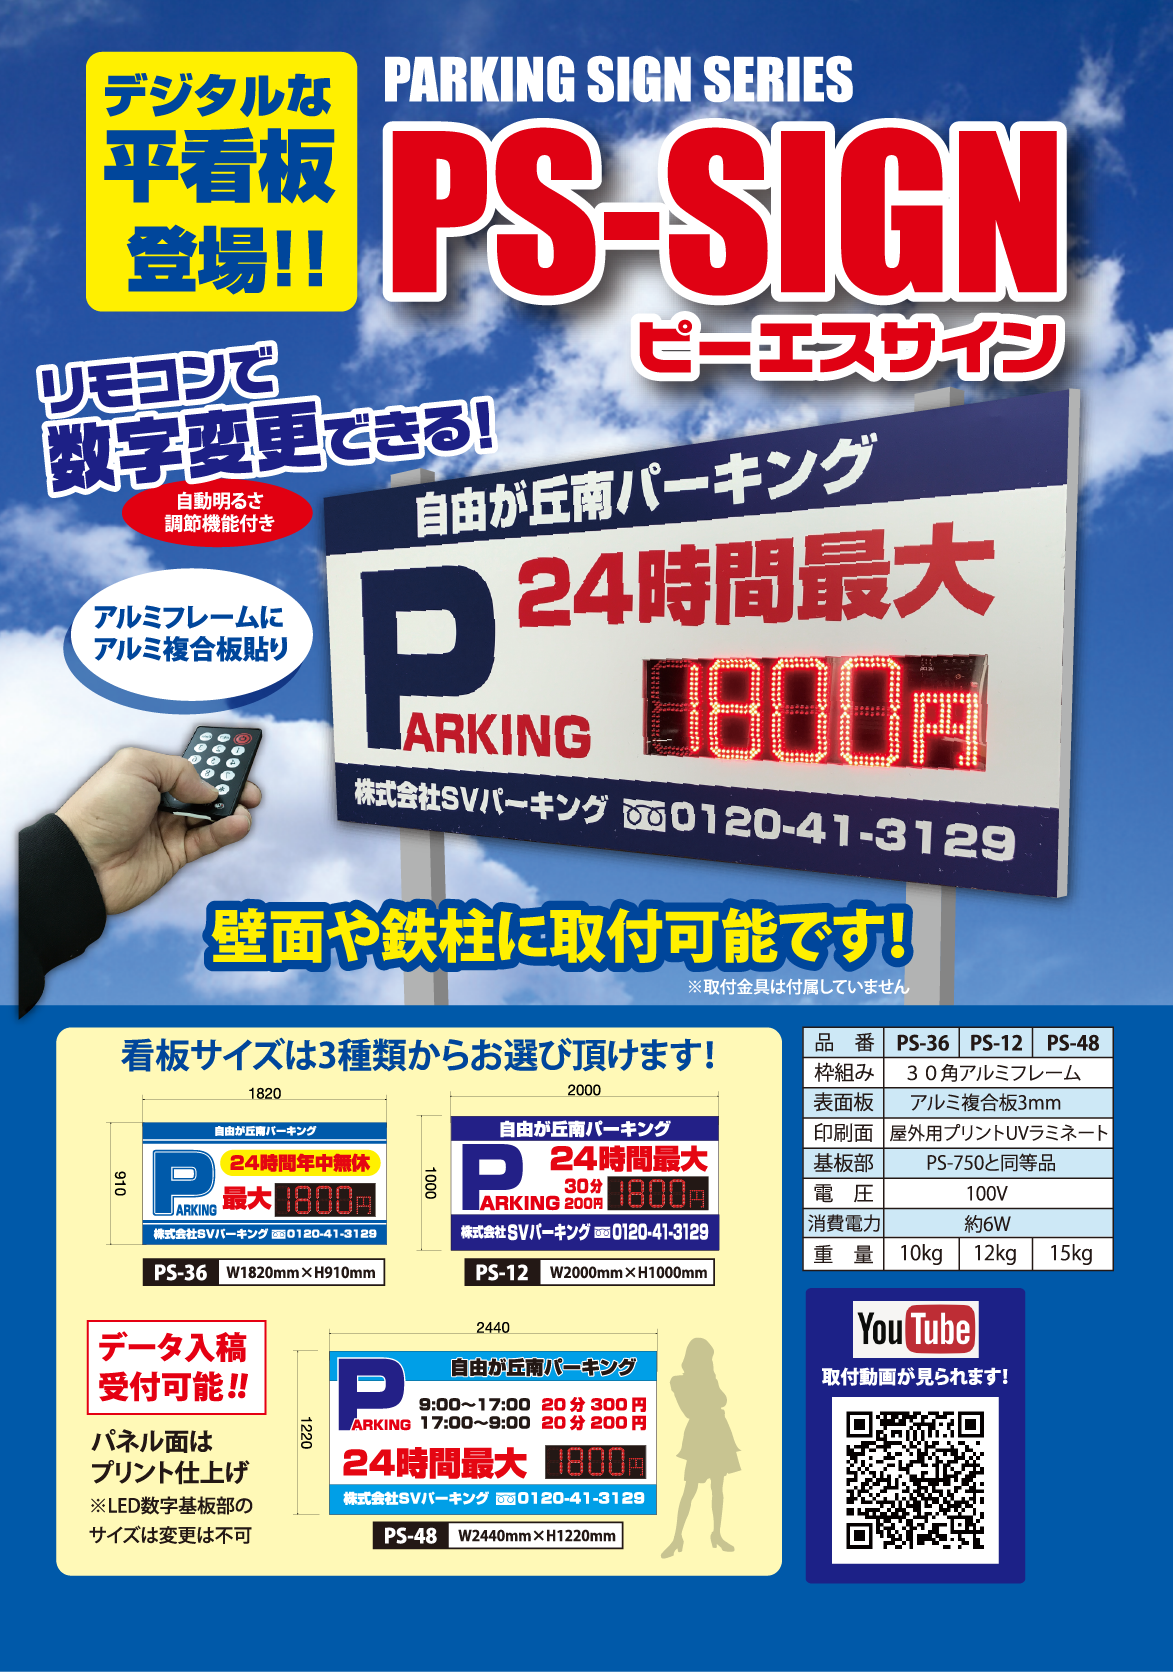 PS-SIGN リモコンで気軽に変更可能な料金表示の平看板のご紹介画像です。